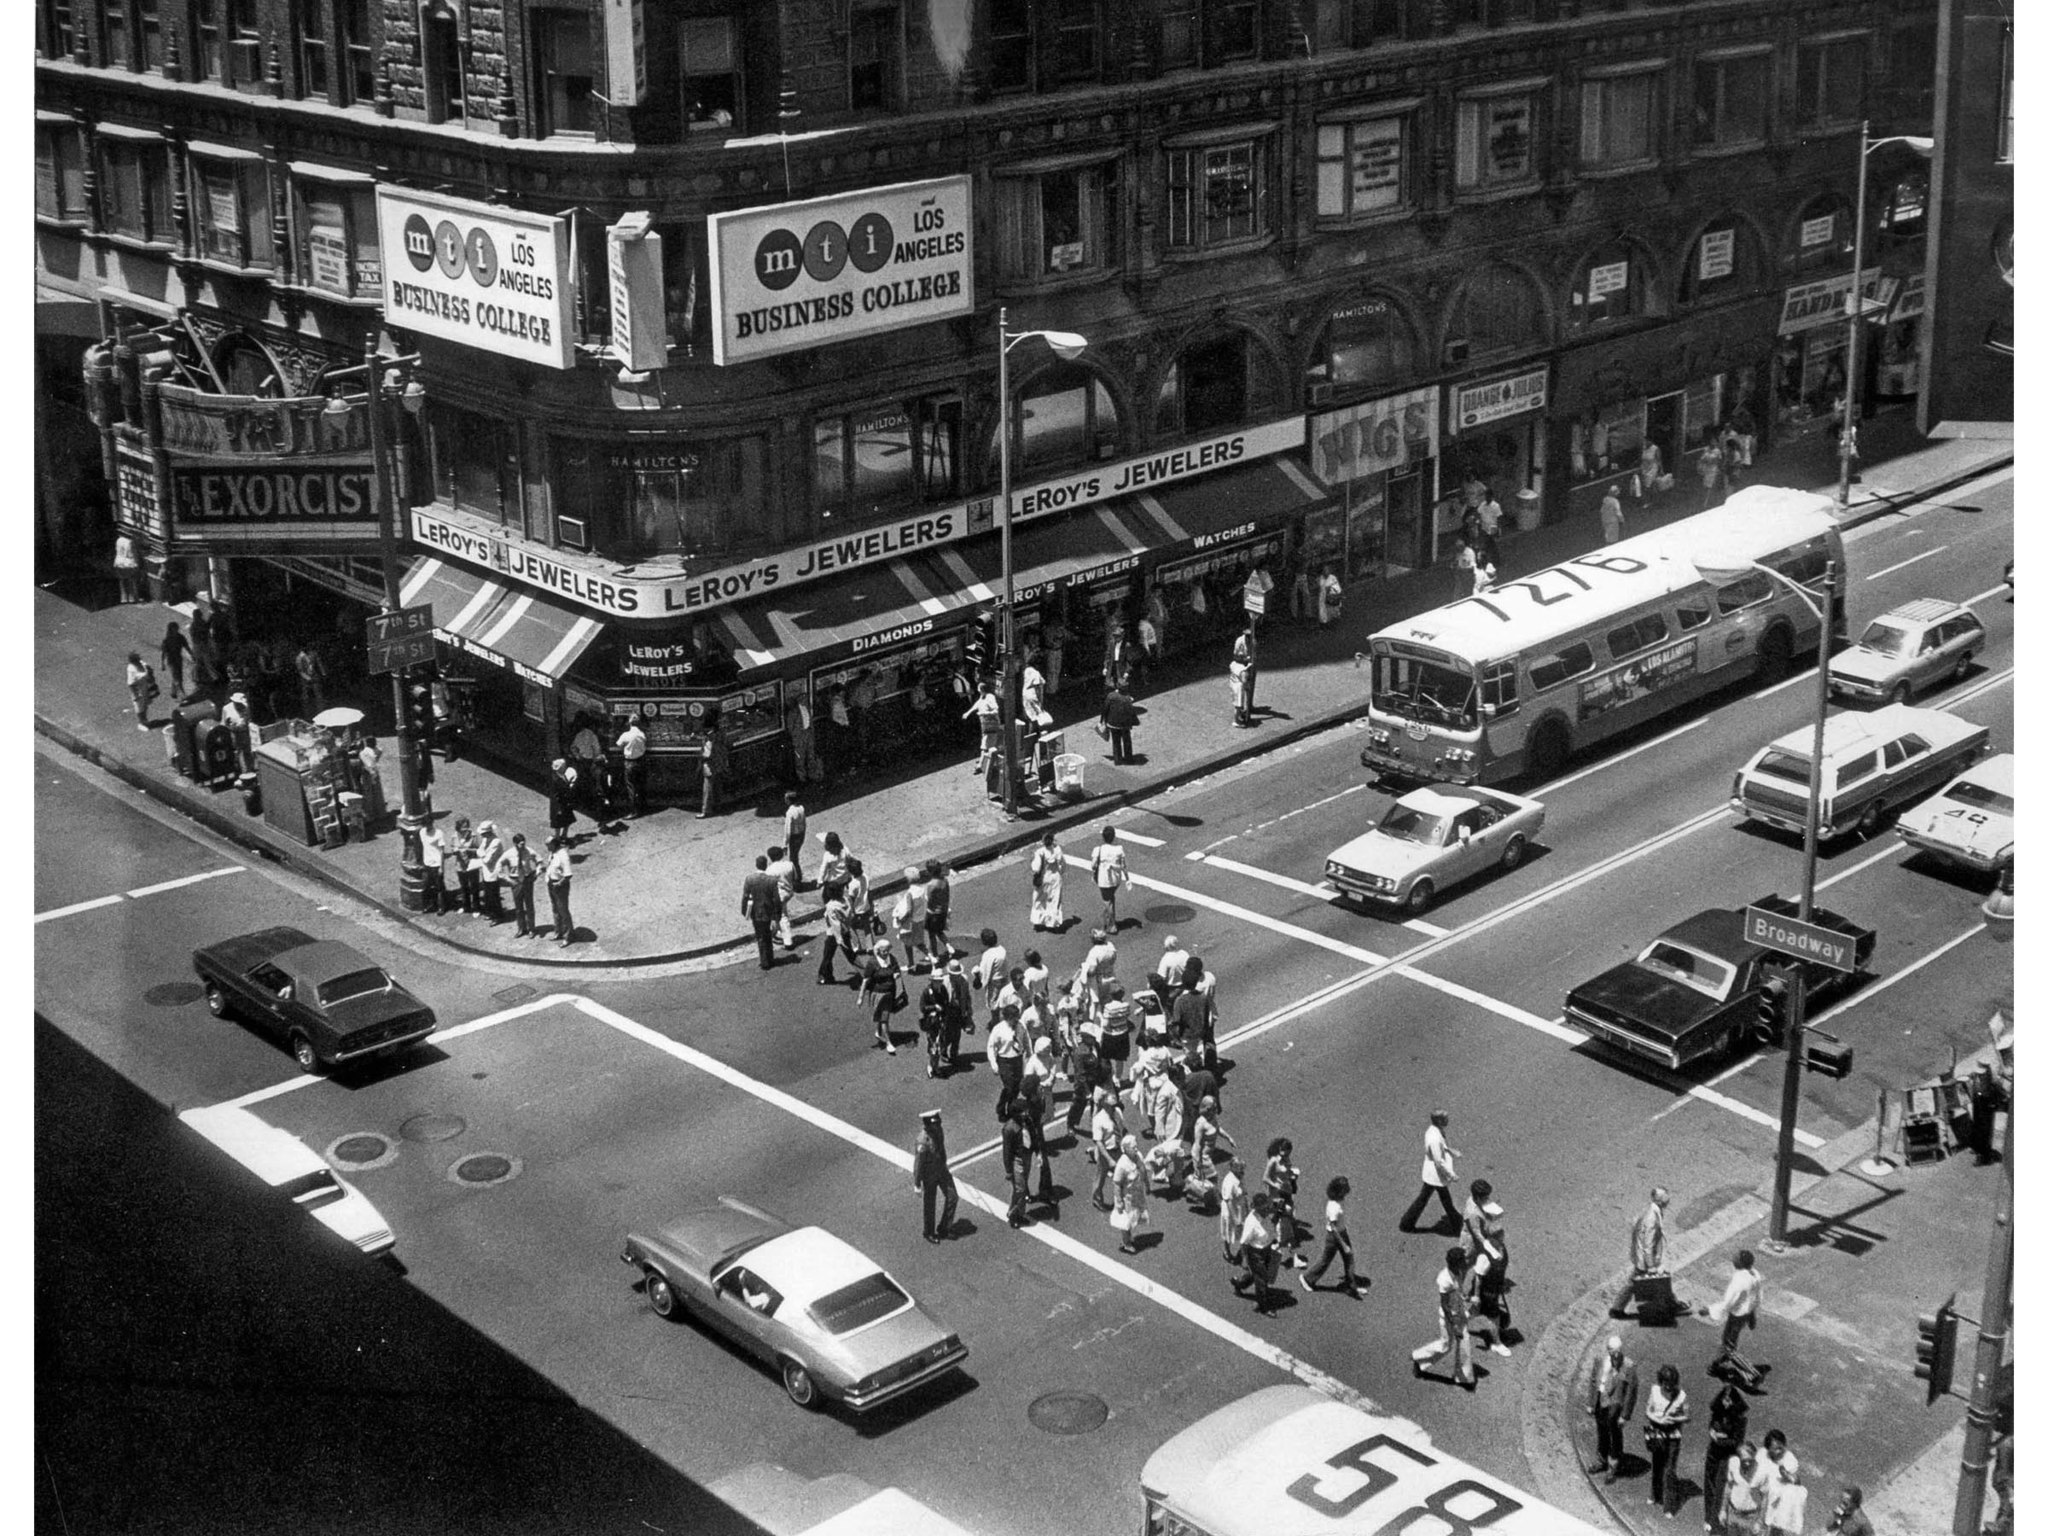 July 9, 1974: Pedestrians around noon at intersection of 7th and Broadway. This photo was published